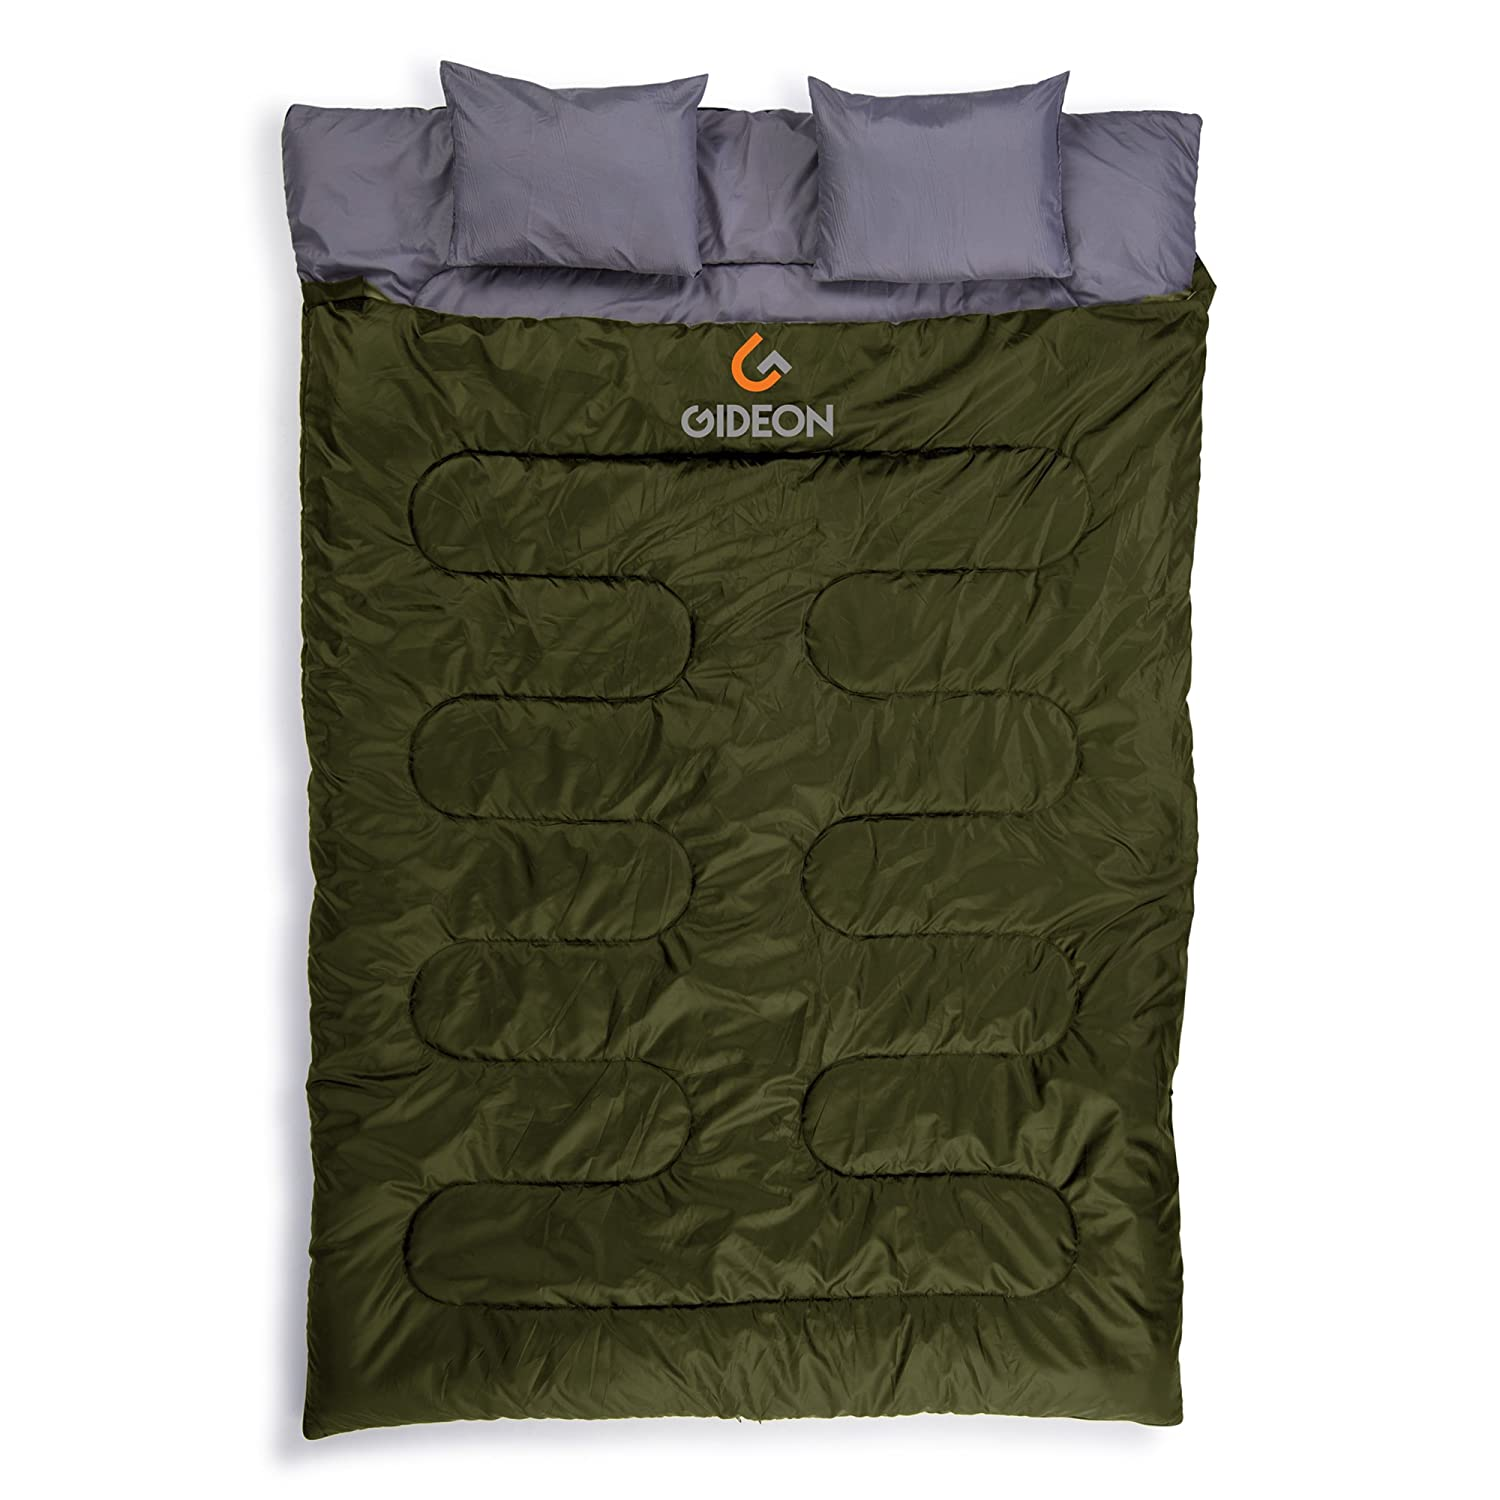 Gideon Waterproof Double Sleeping Bag with 2 Pillows Amazingly Lightweight, Compact, Comfortable Warm for Backpacking, Camping, etc. Double Size or Convert into 2-Single Bags